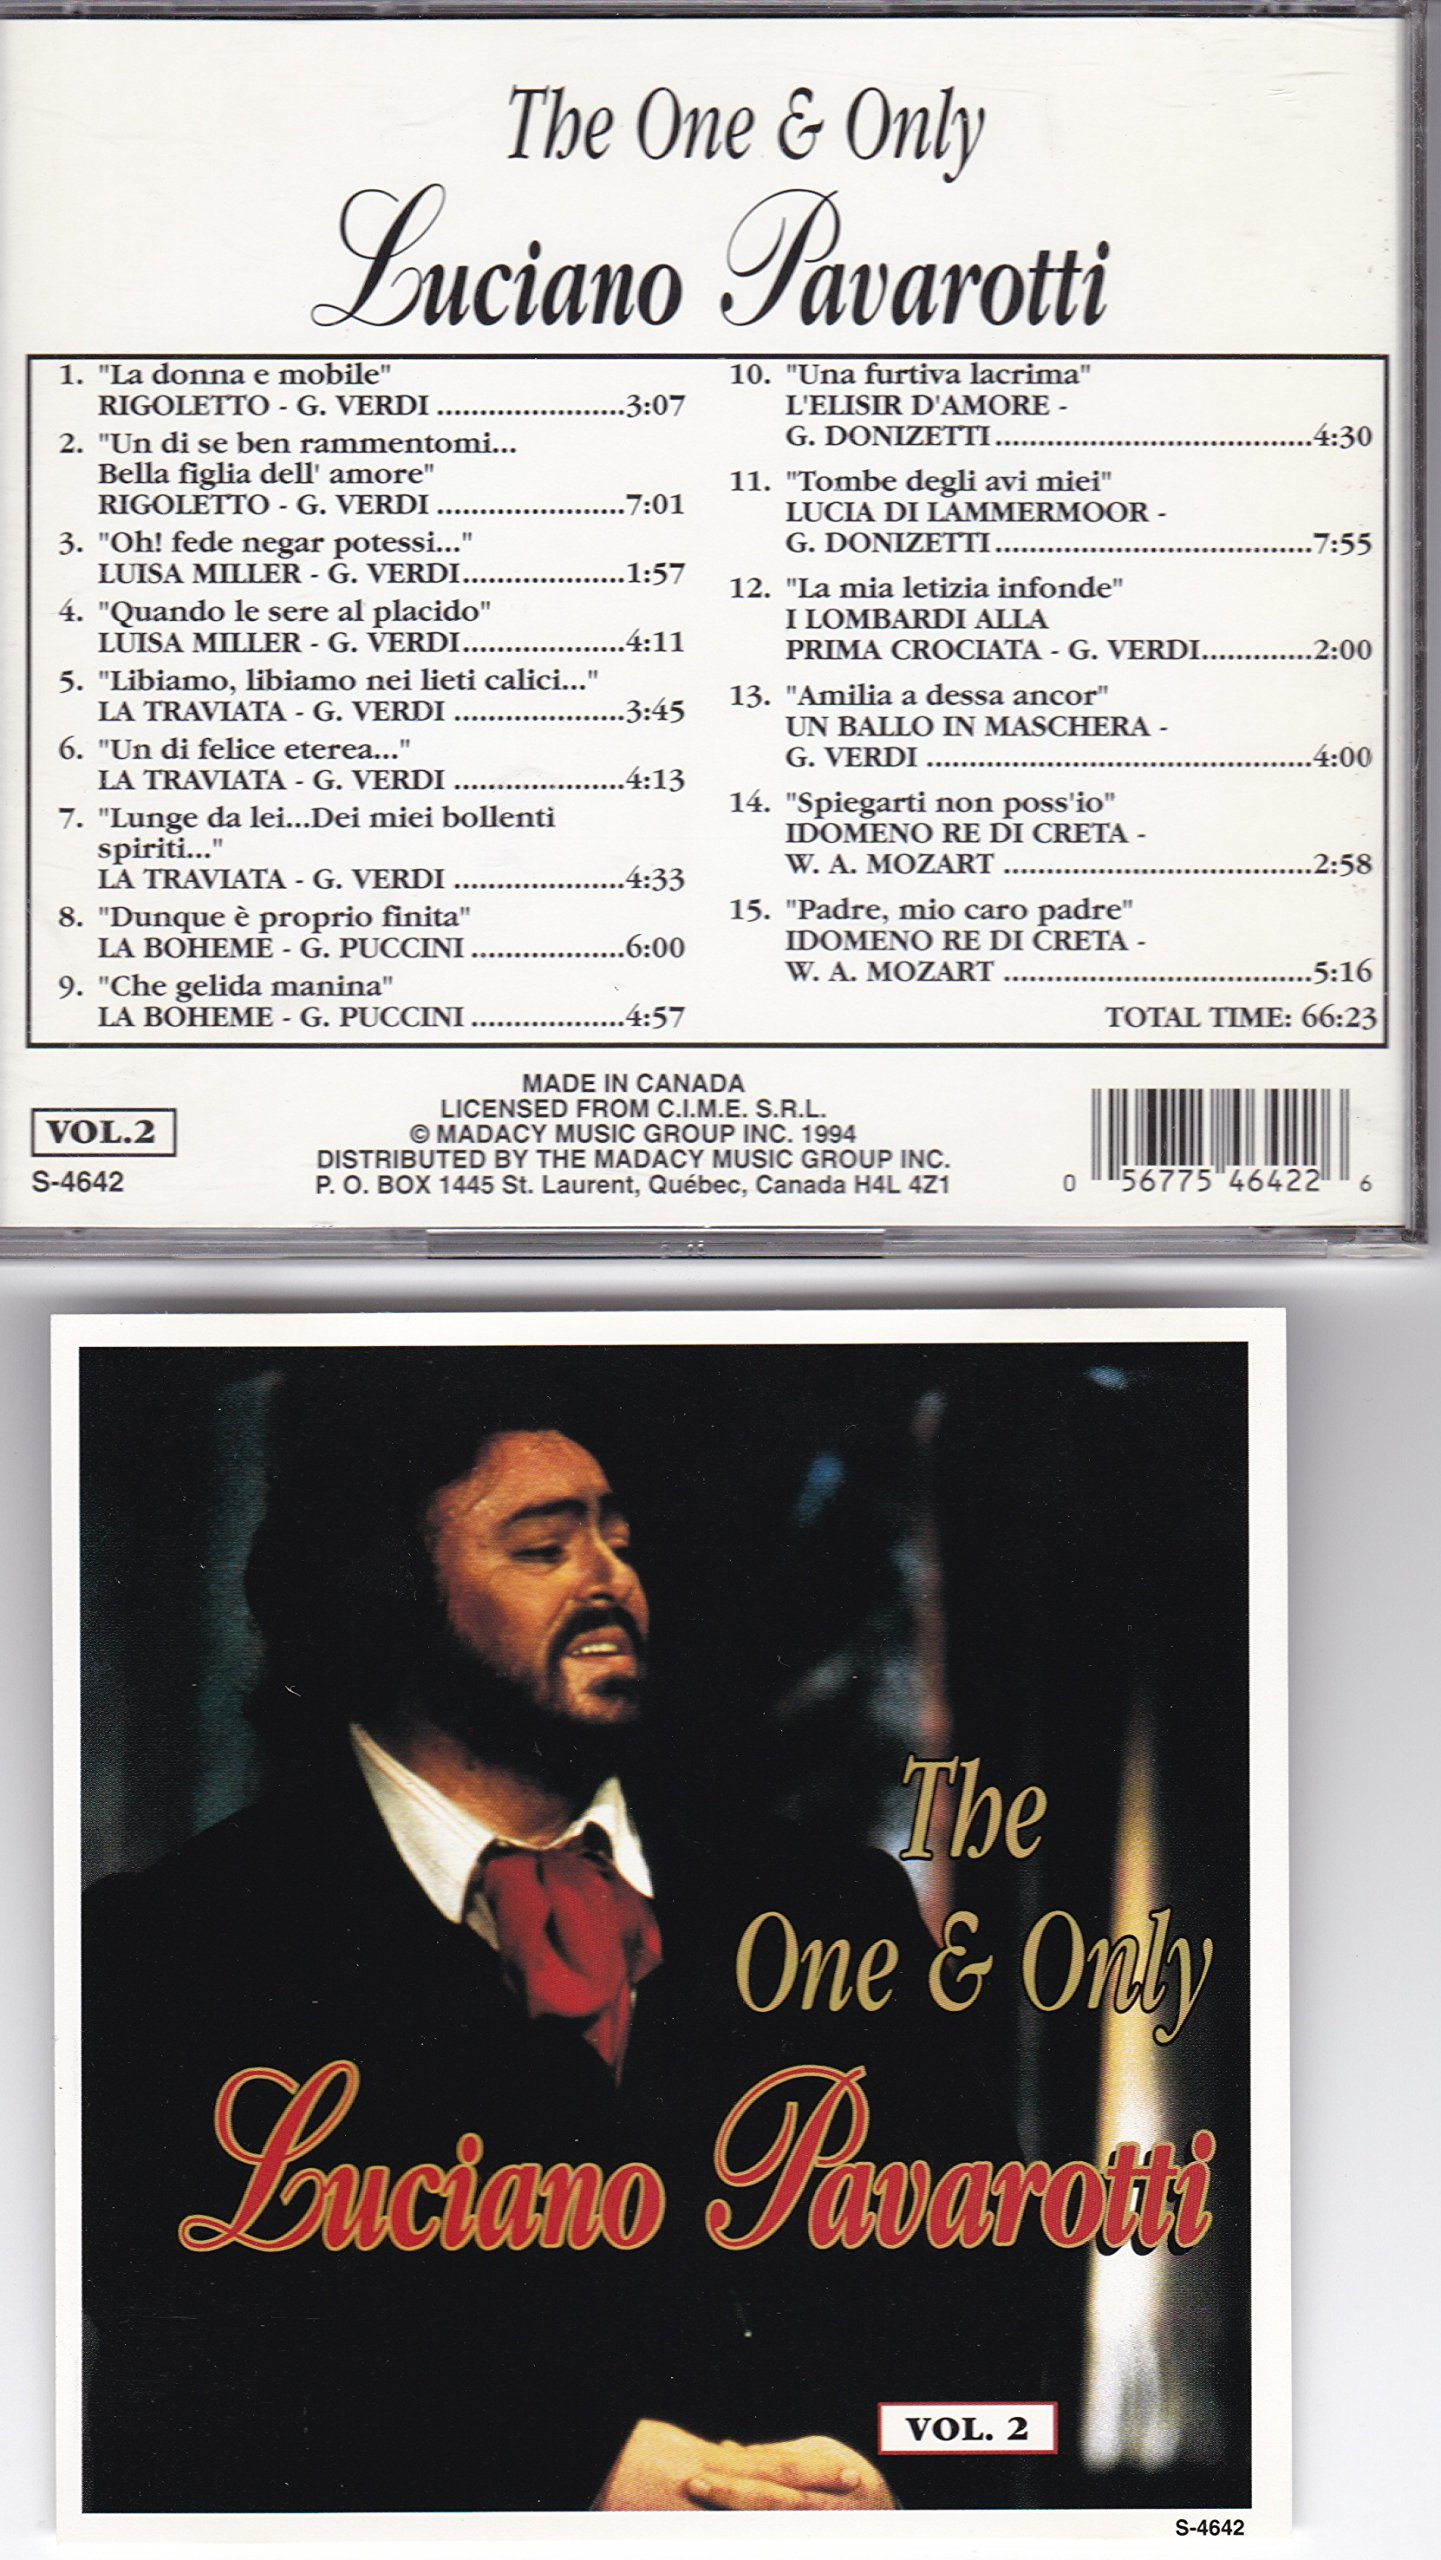 The One & Only Luciano Pavarotti (Vol. 2)